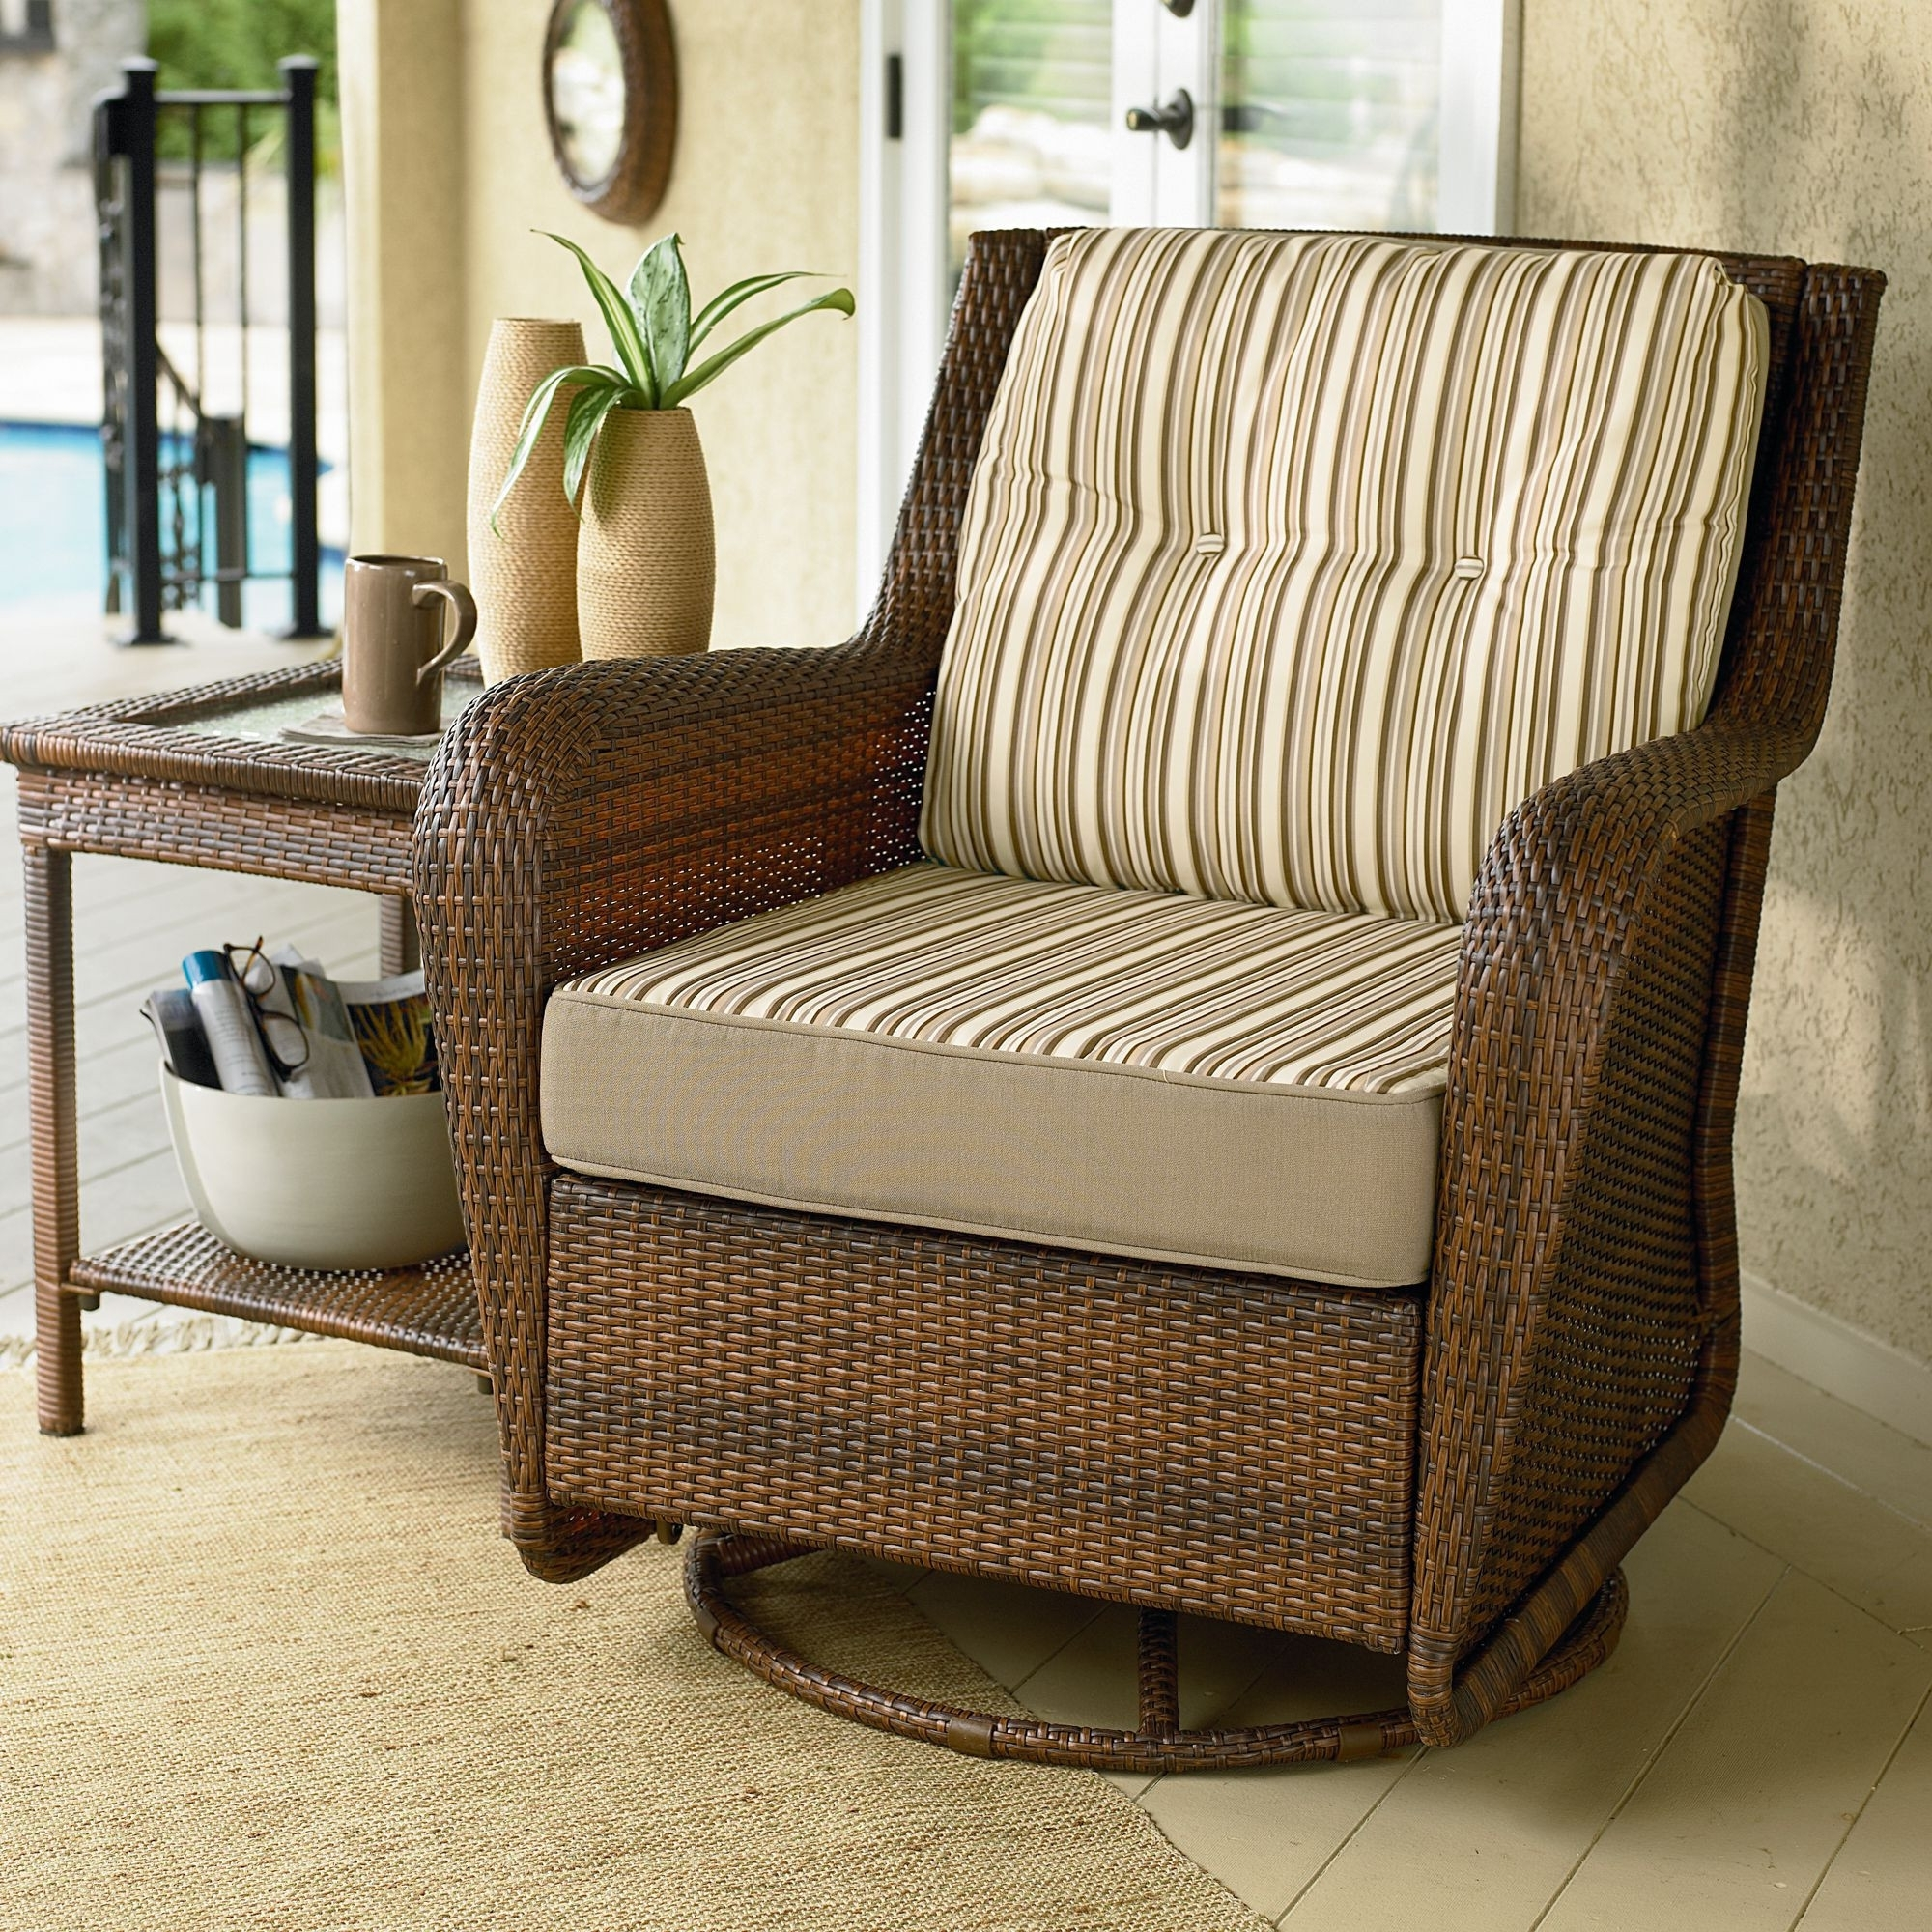 Patio Rocking Chairs And Gliders Regarding Latest Glider Chair For Patio – Decco.voiceoverservices (View 4 of 15)